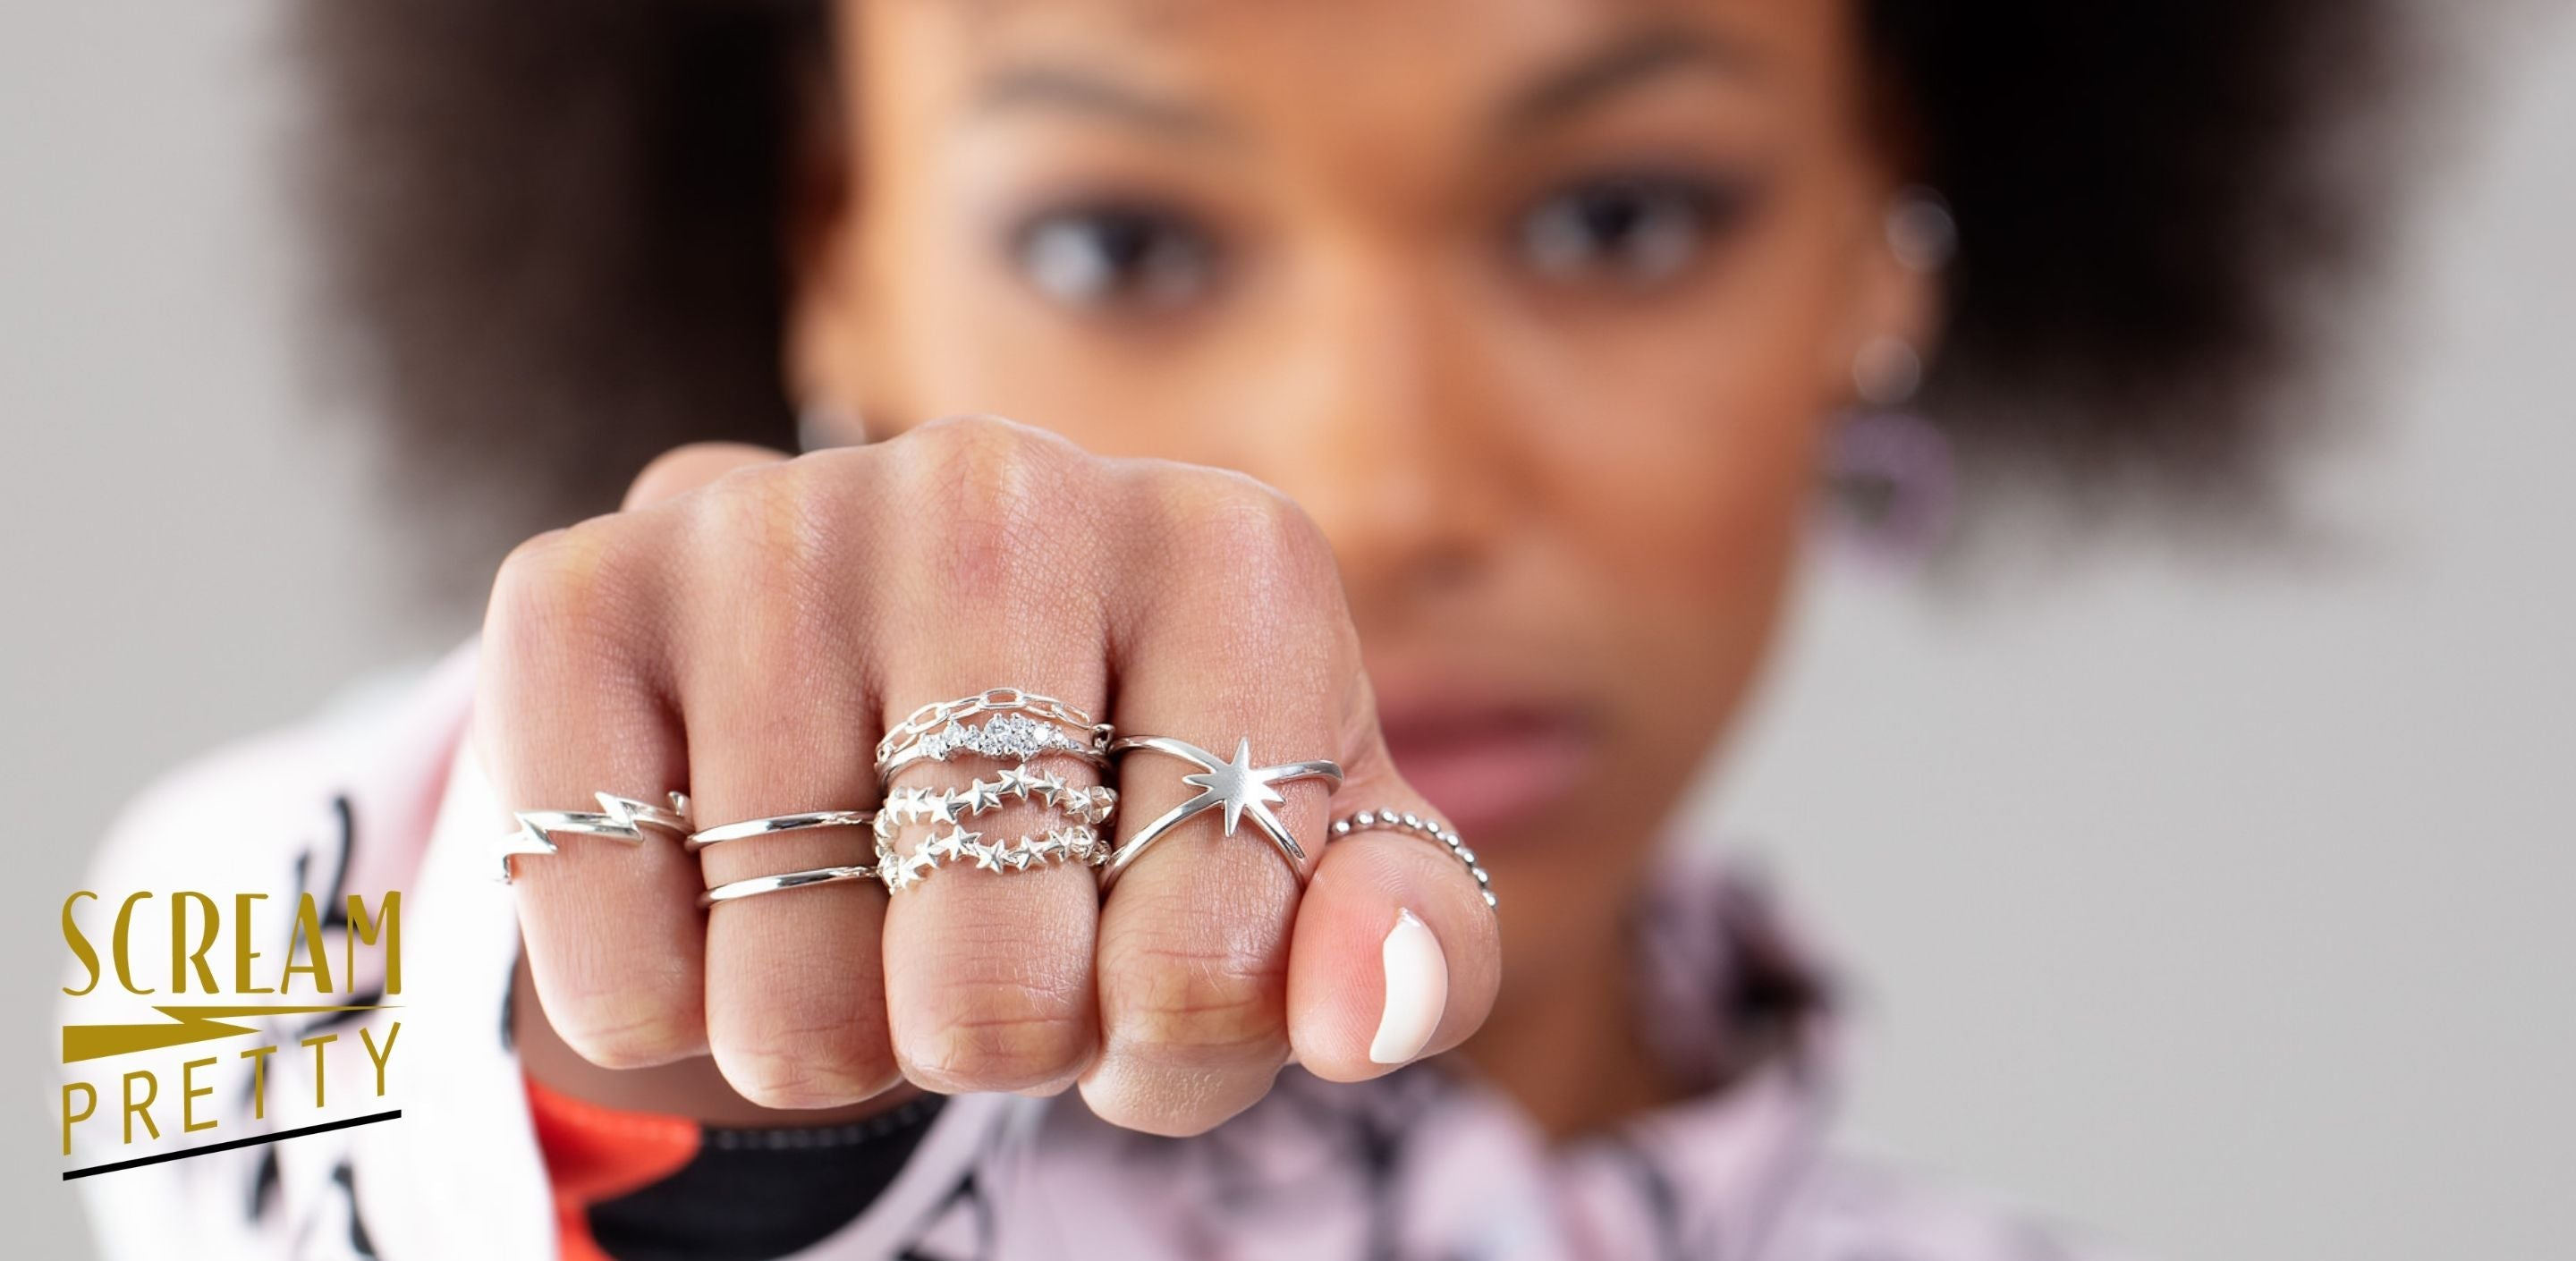 How to create a great Ring Stack Scream Pretty